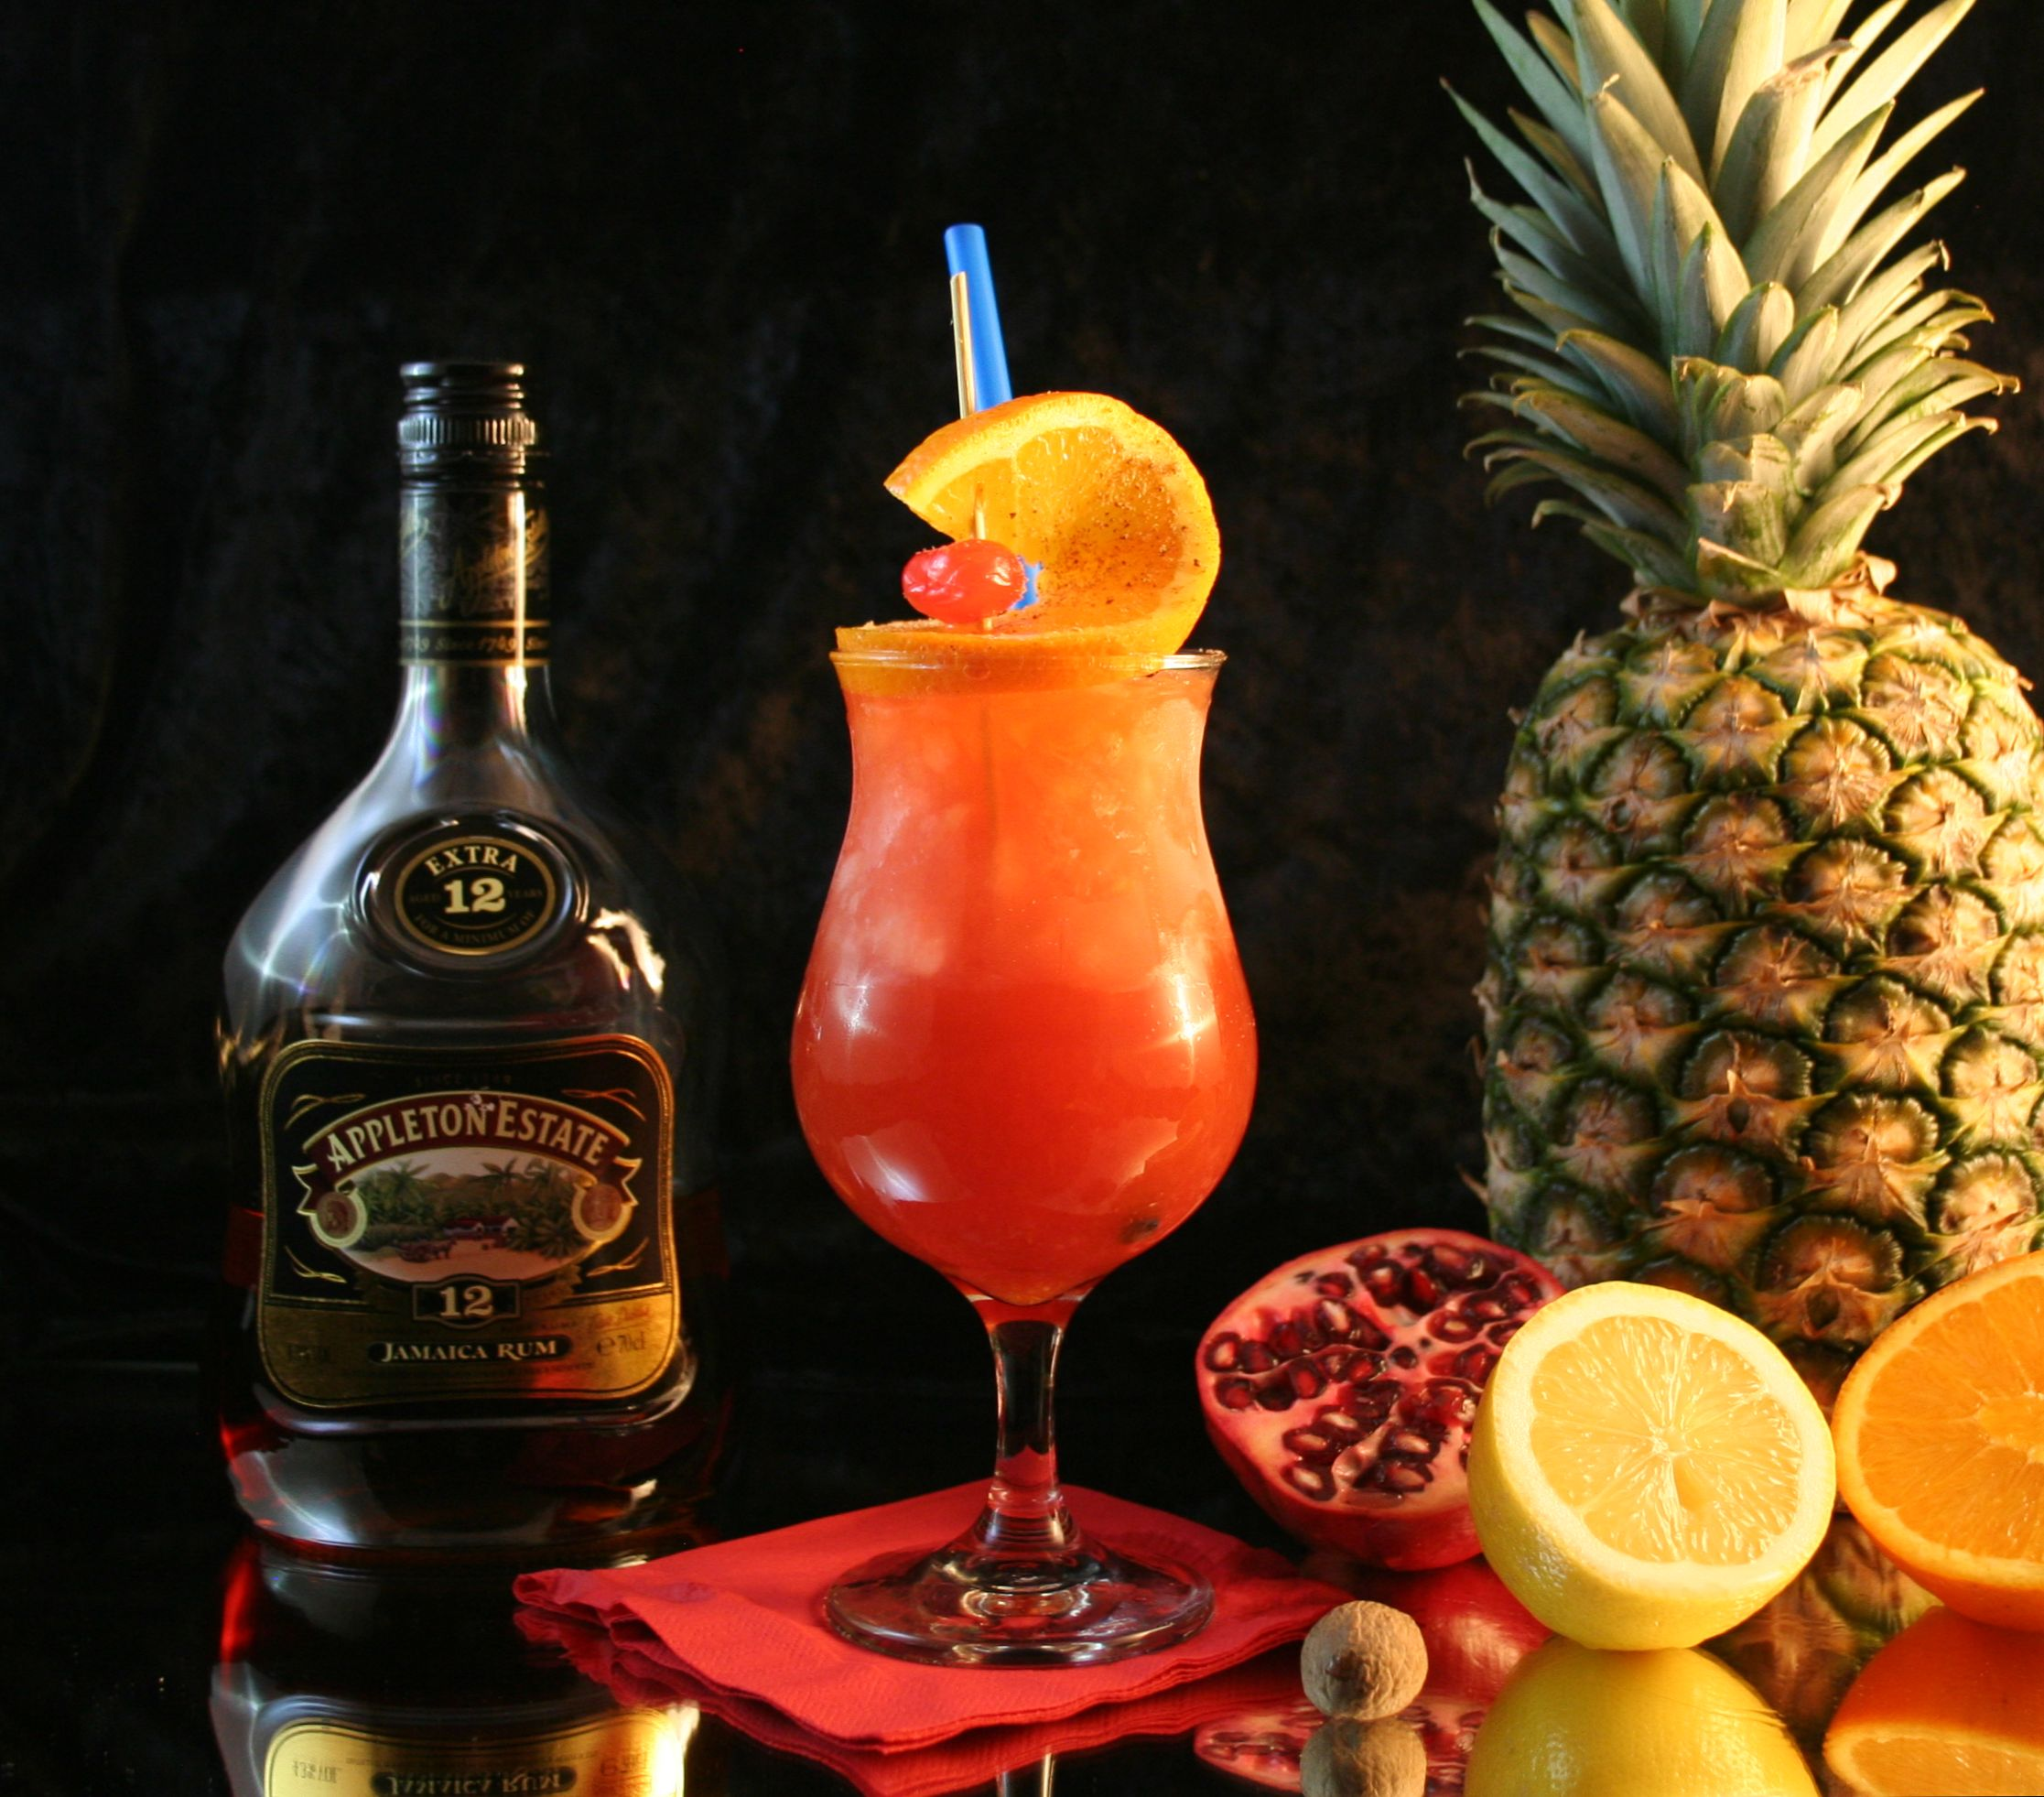 File:Planters Punch 2.jpg - Wikimedia Commons